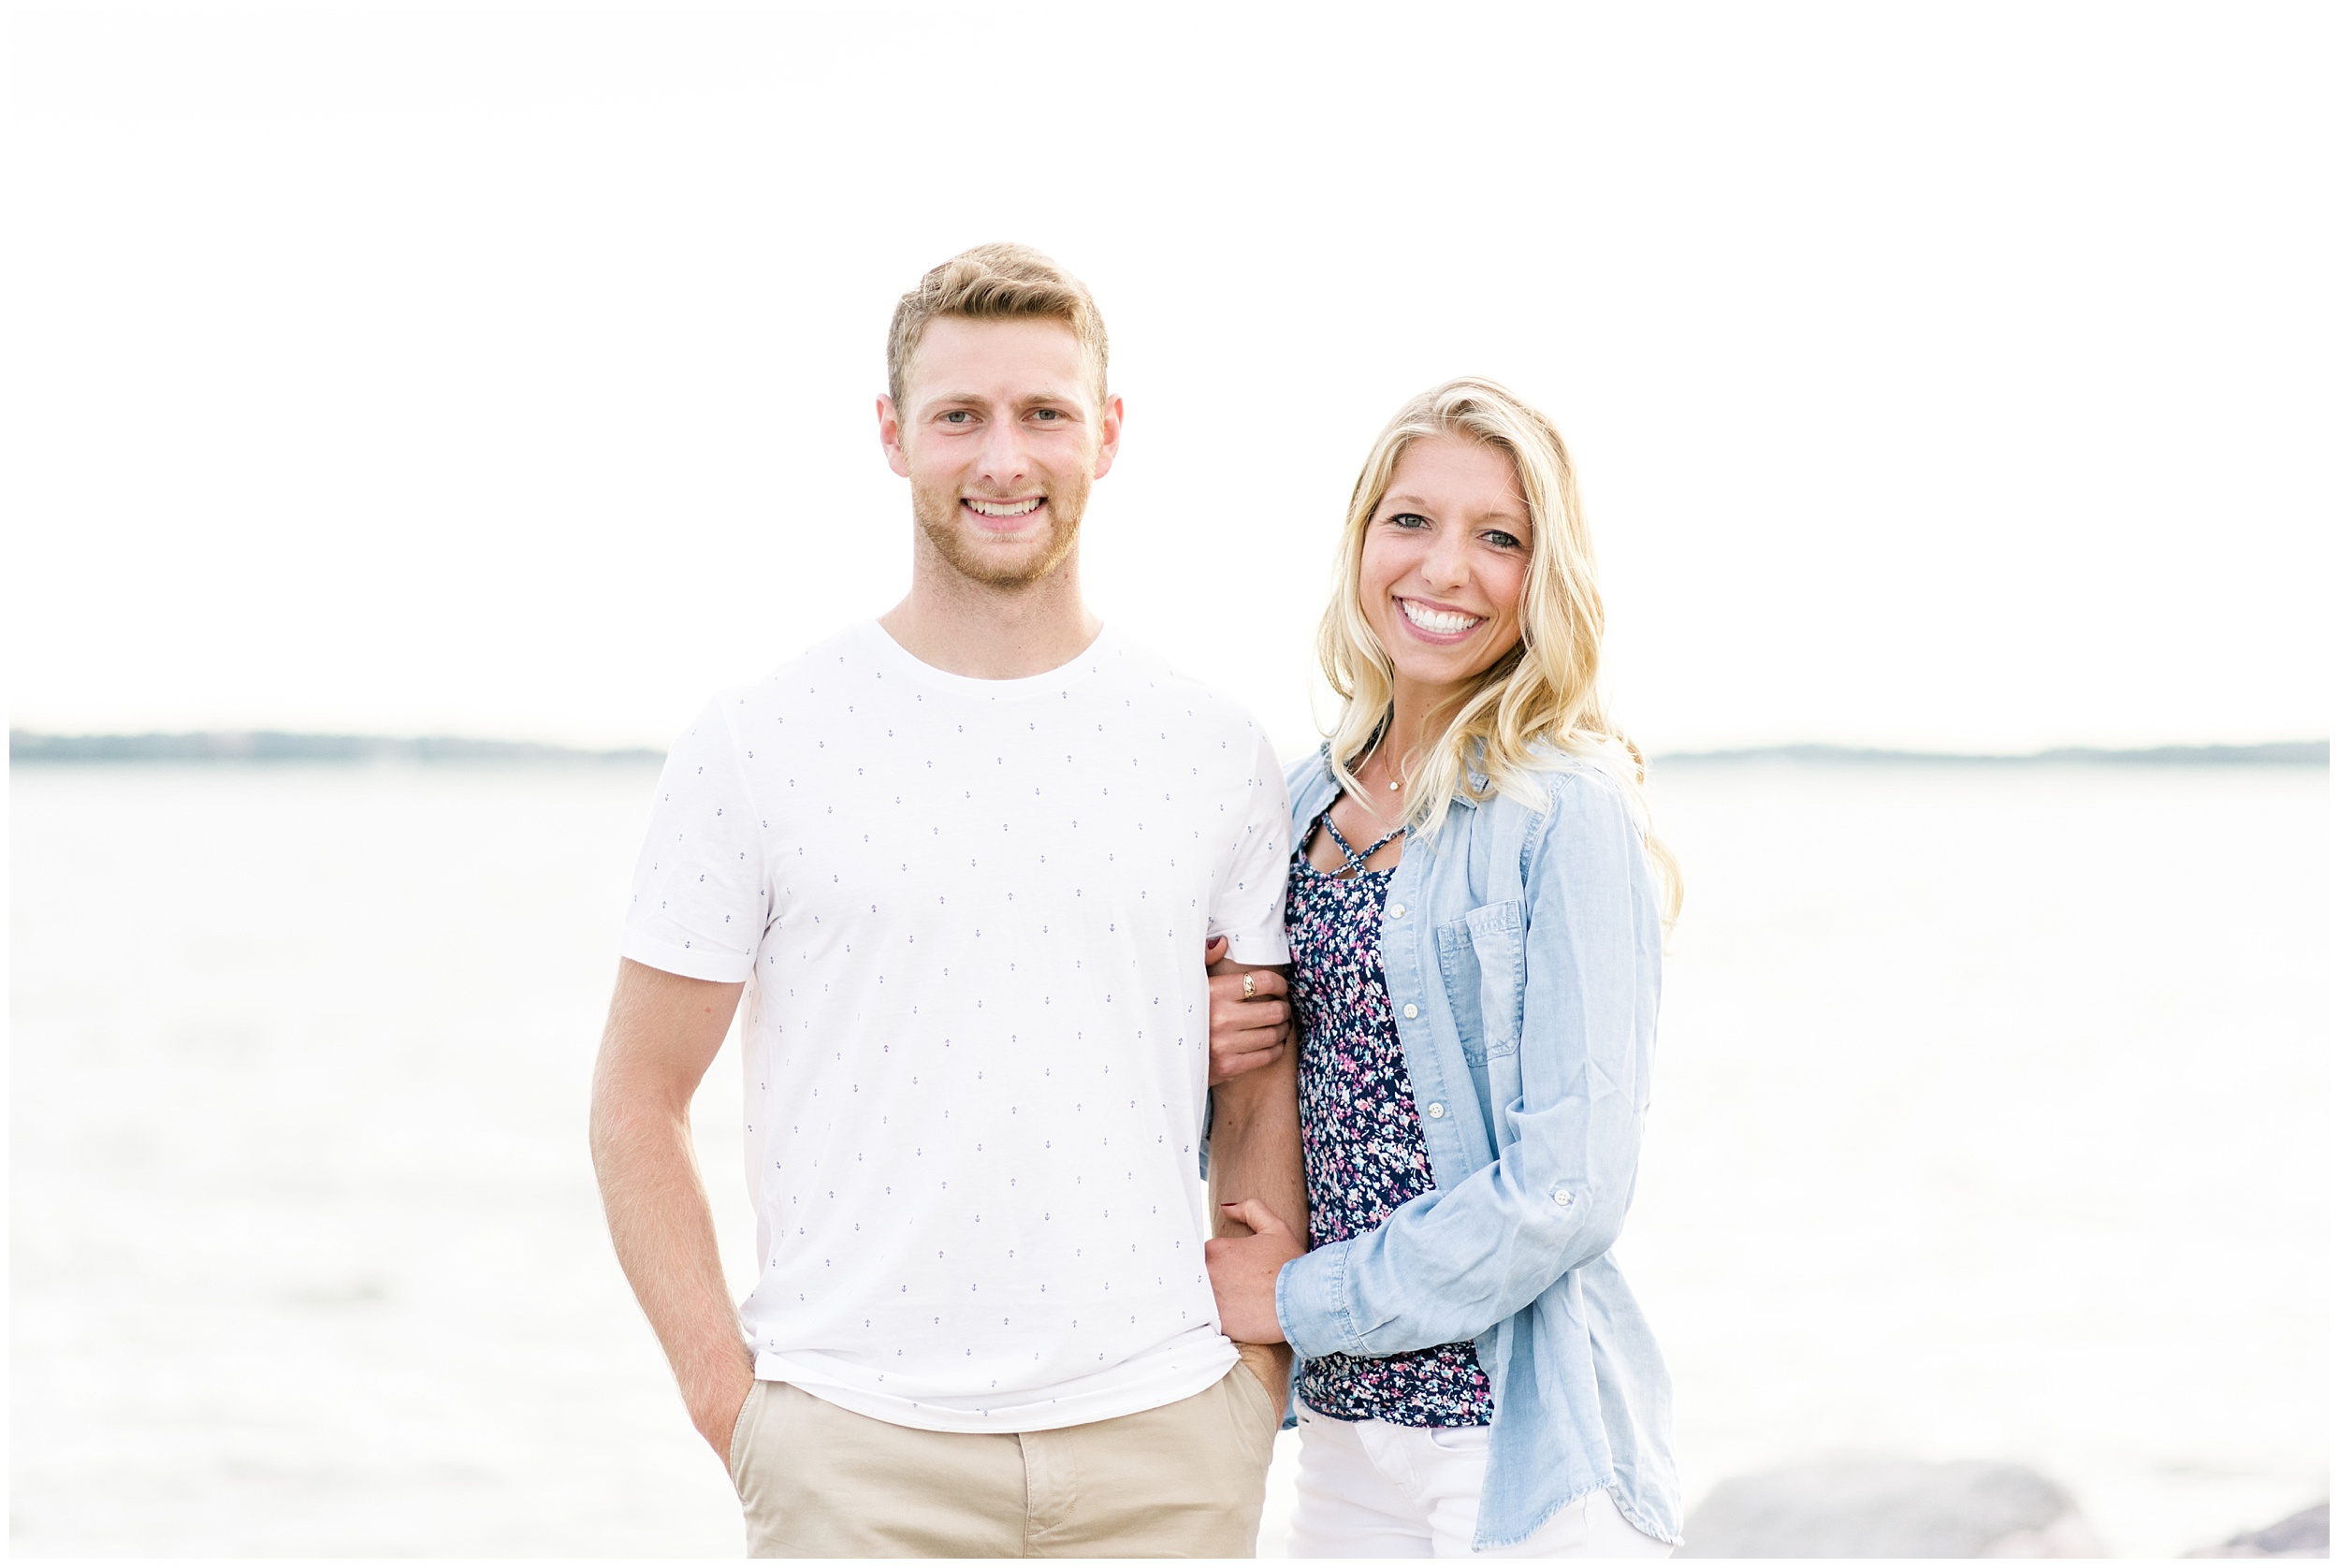 tenney-park-engagement-session-madison-wisconsin-bright-light-airy-wedding-photographer_0029.jpg